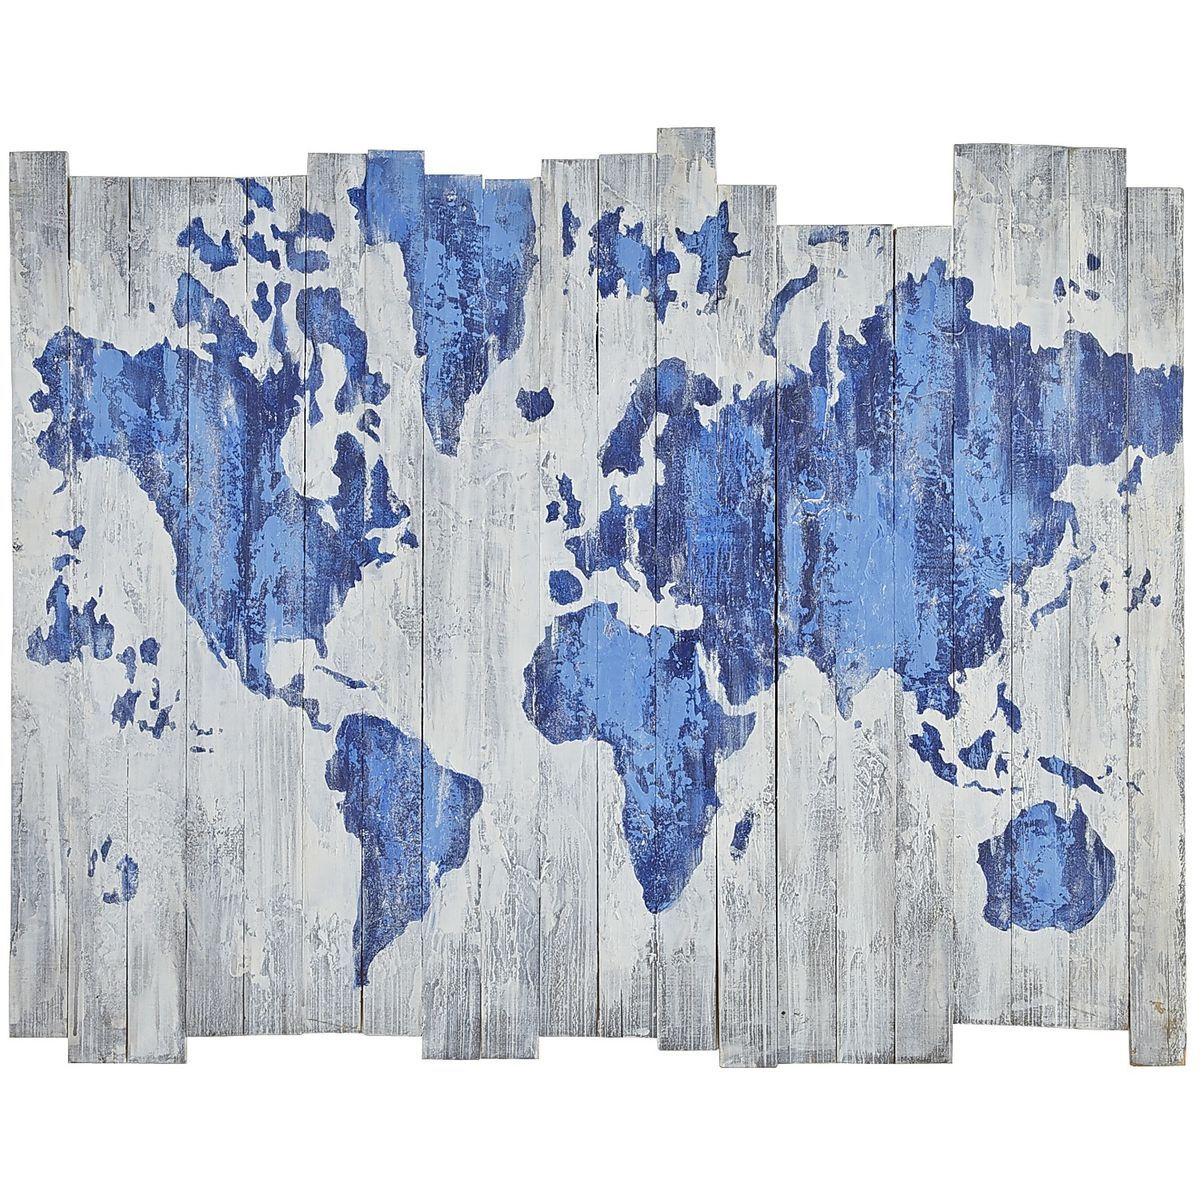 World Map on Wood Planks | Pier 1 Imports | Wood world map ...